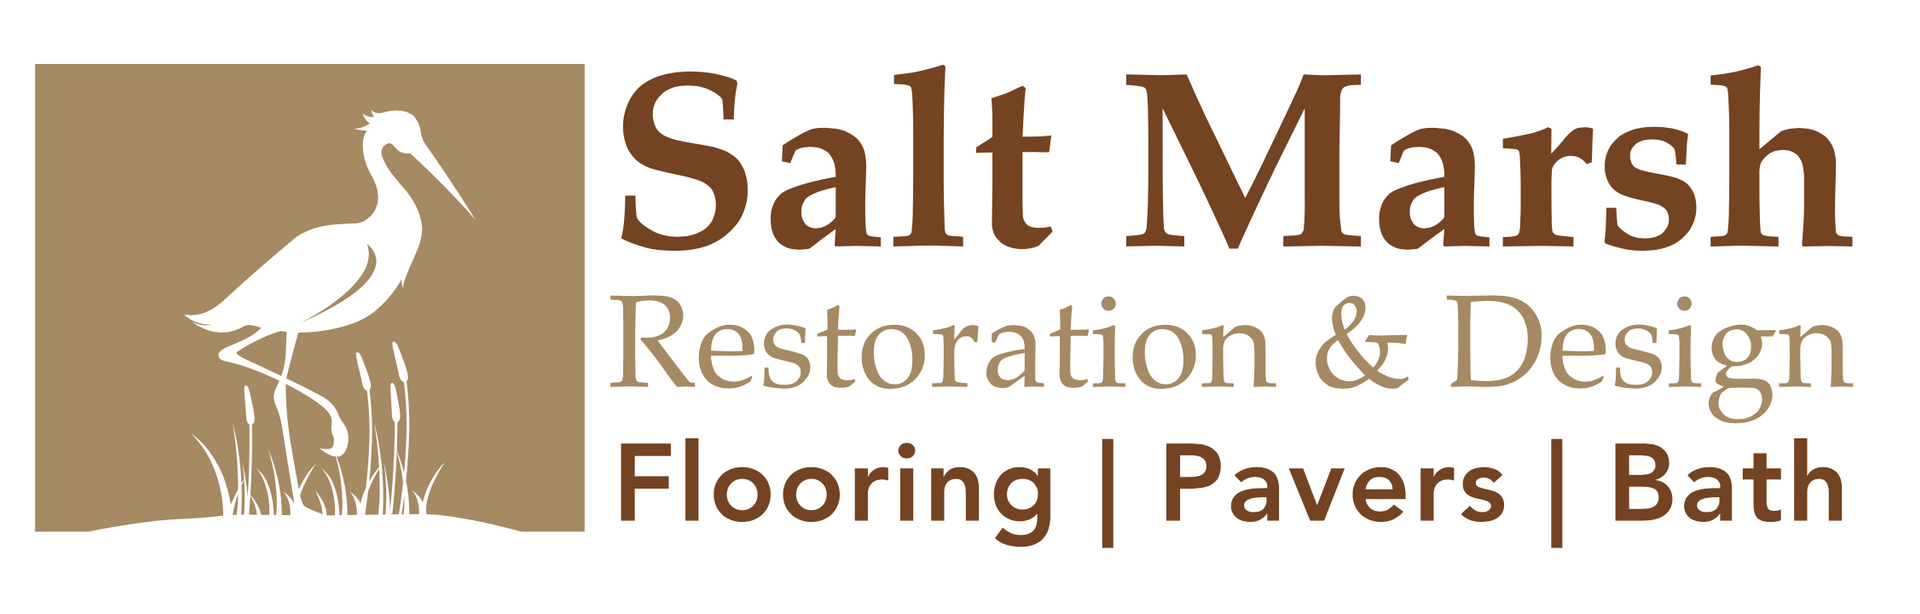 custom logo of a Florida waterbird for Salt Marsh Flooring company